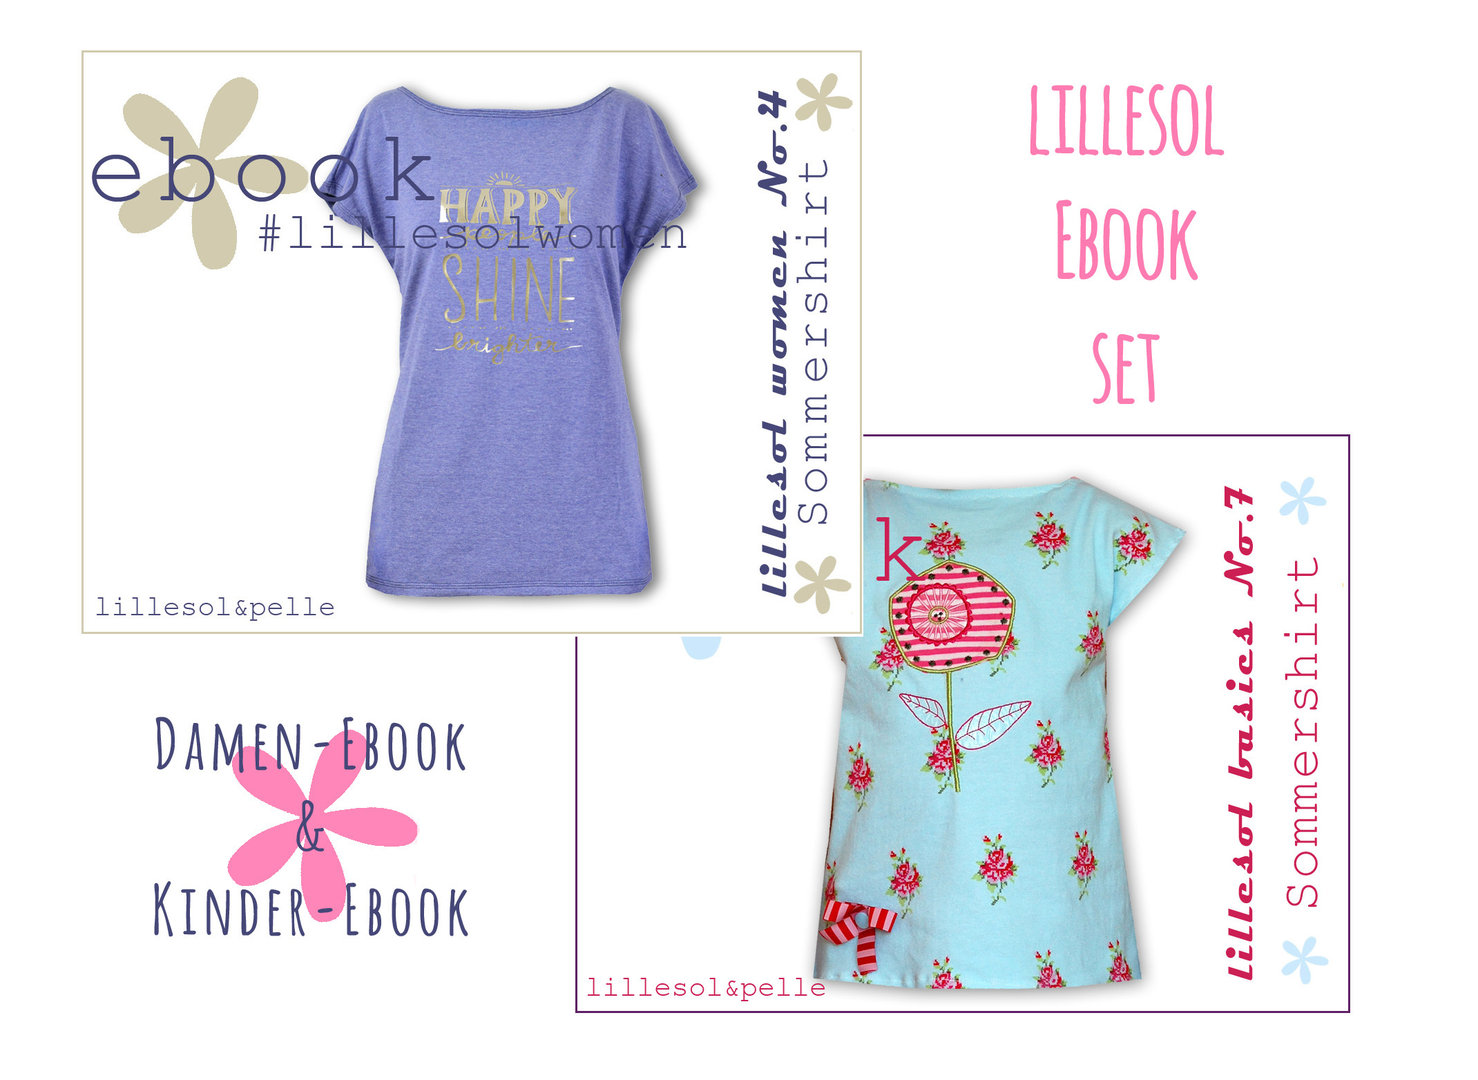 lillesol ebook set basics No.7 und women No.4